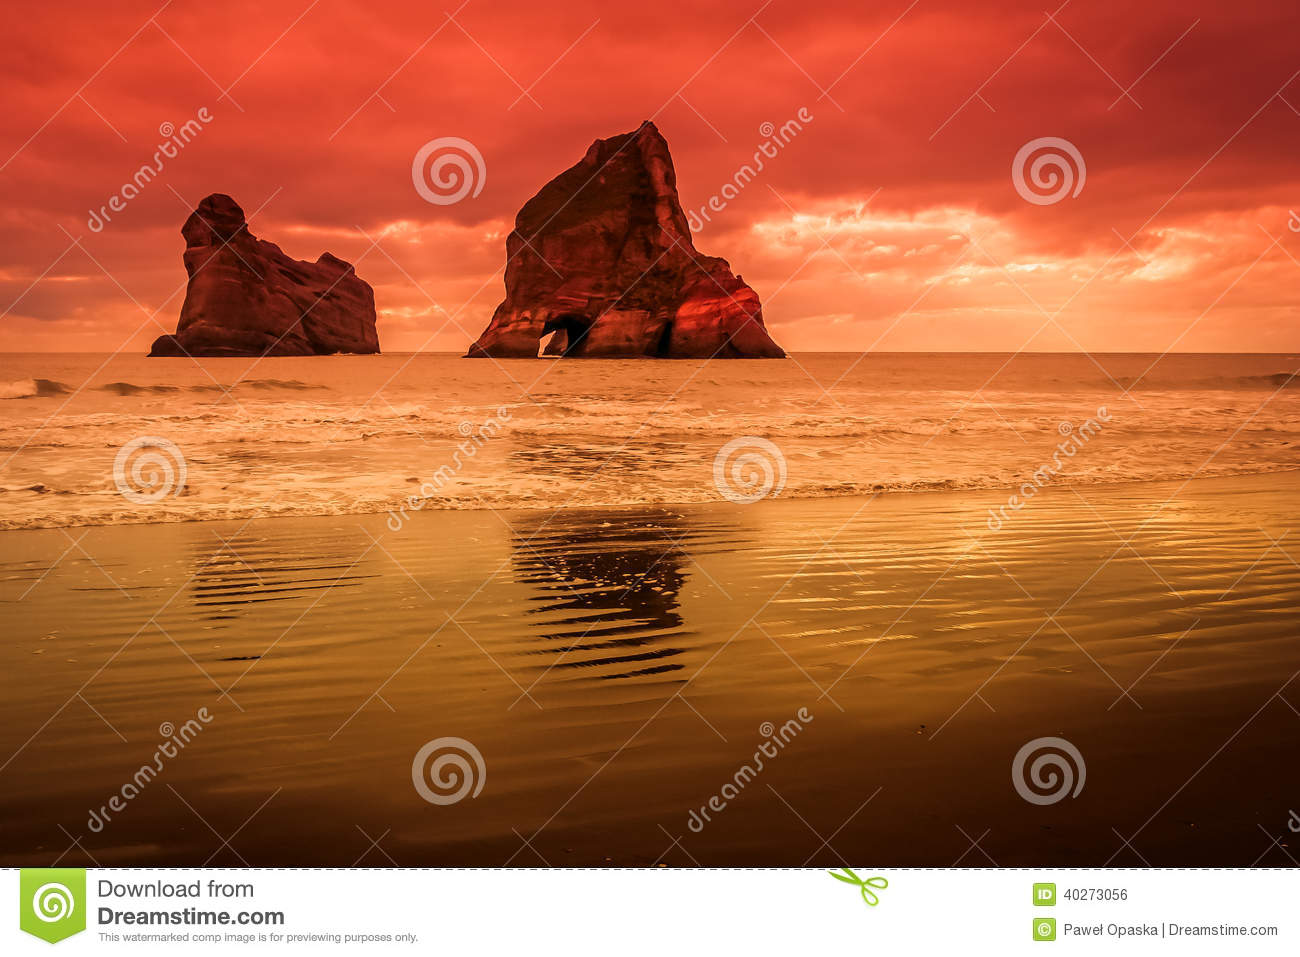 Archway Islands at sunset